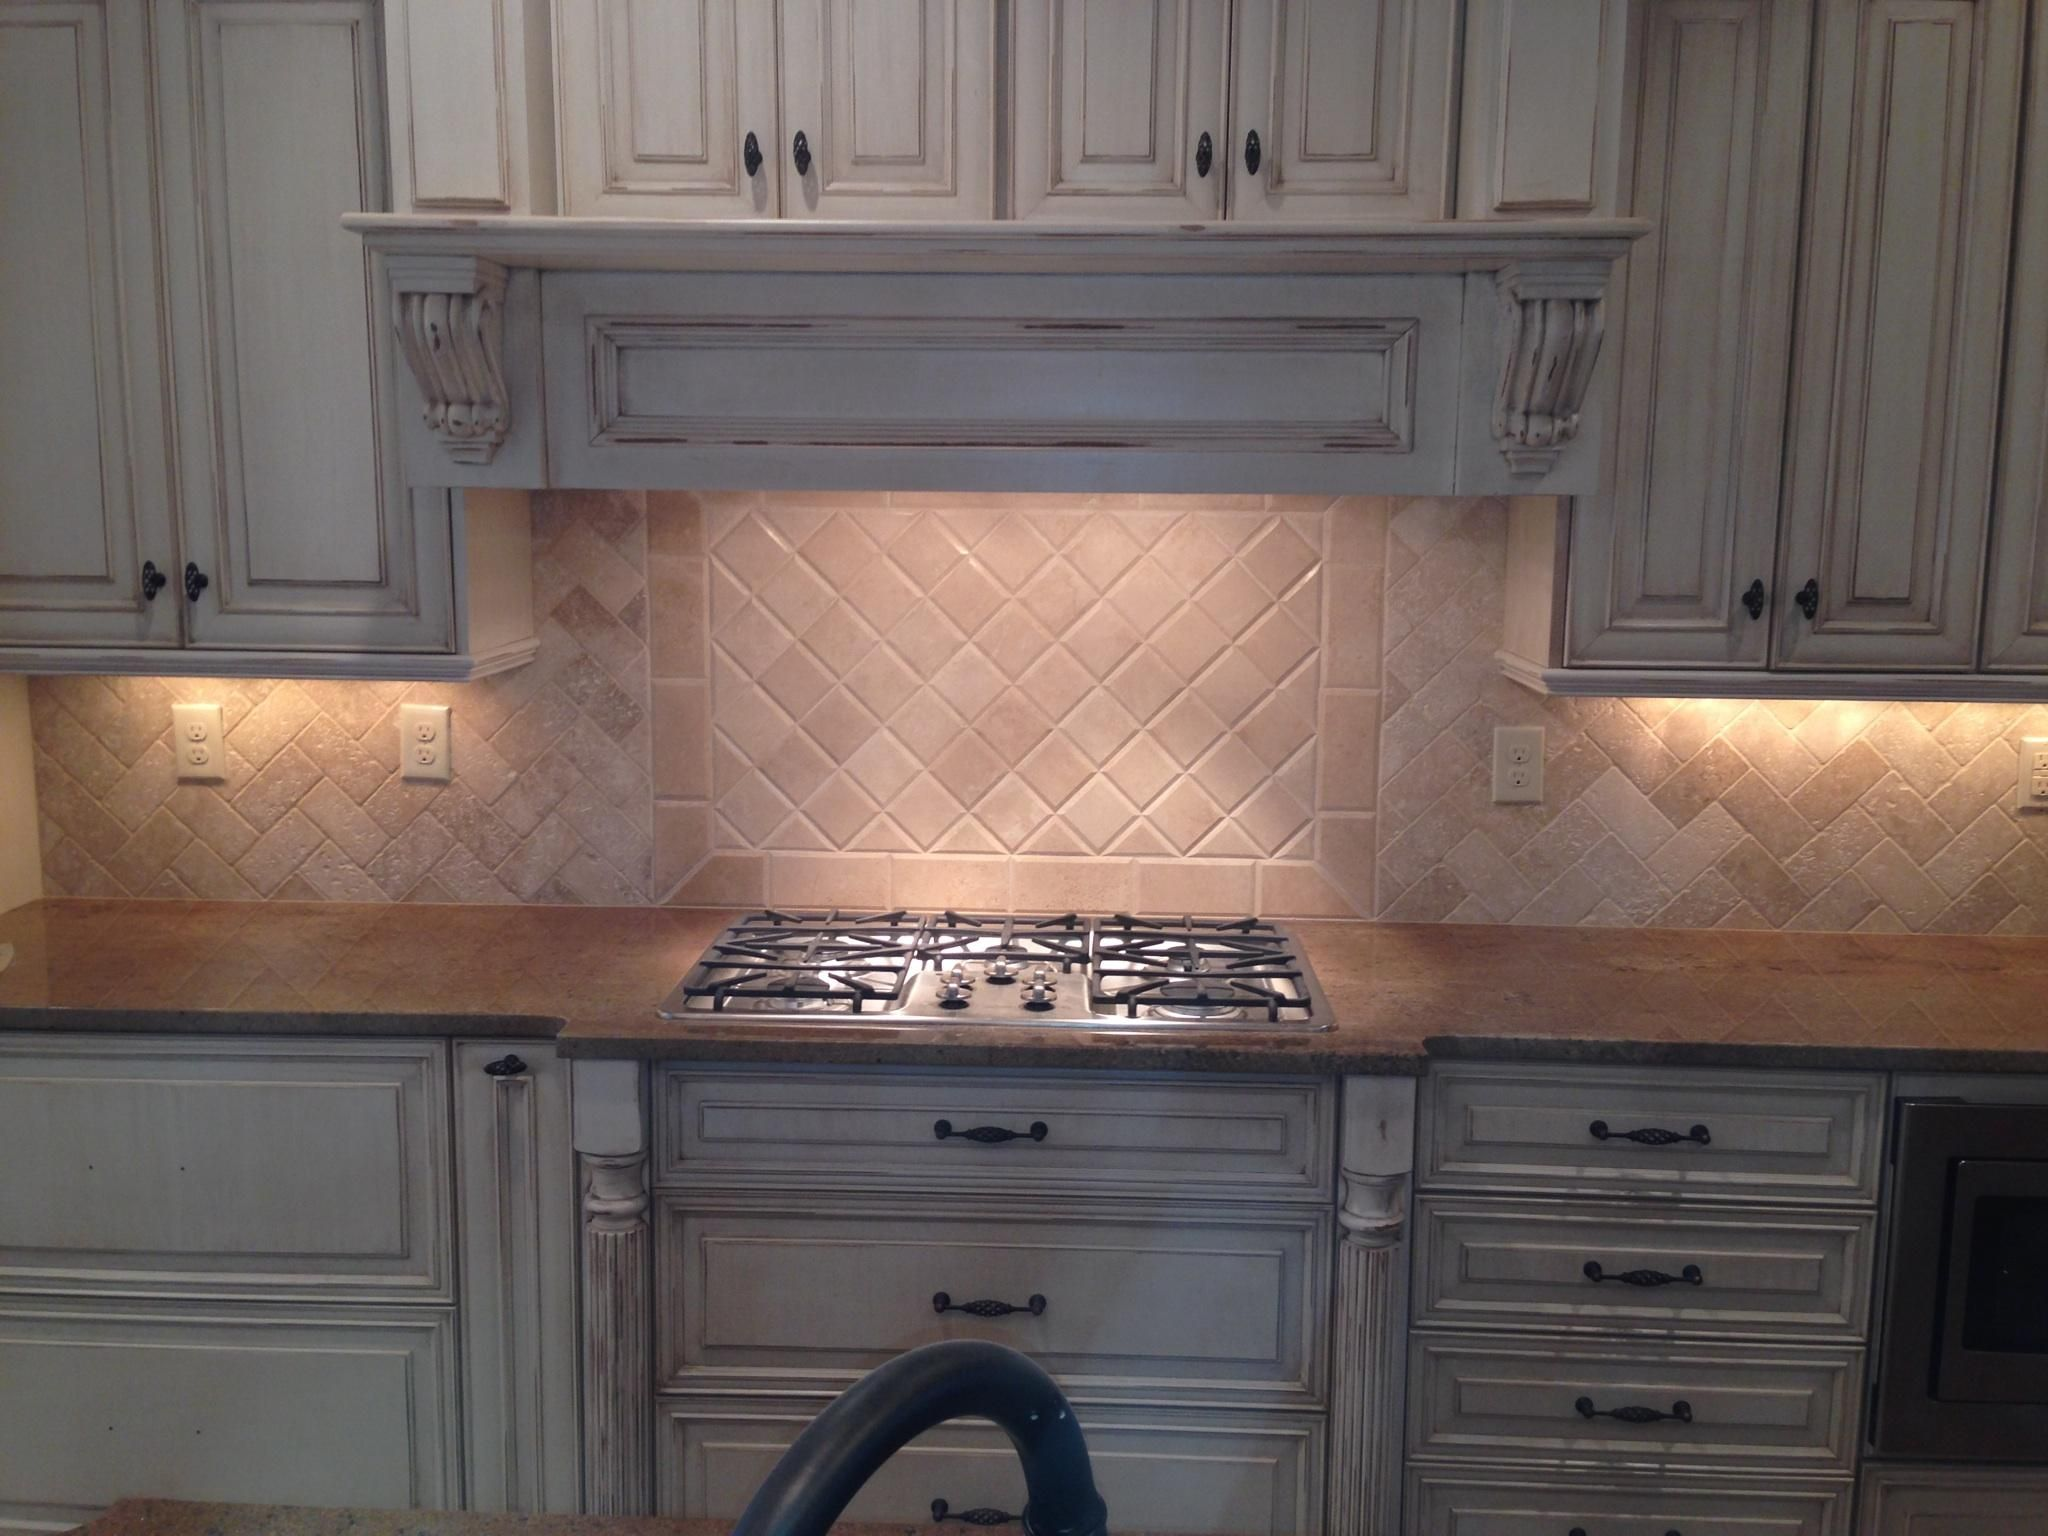 Travertine Stone Backsplash : Backsplash tumbled marble travertine herringbone tile